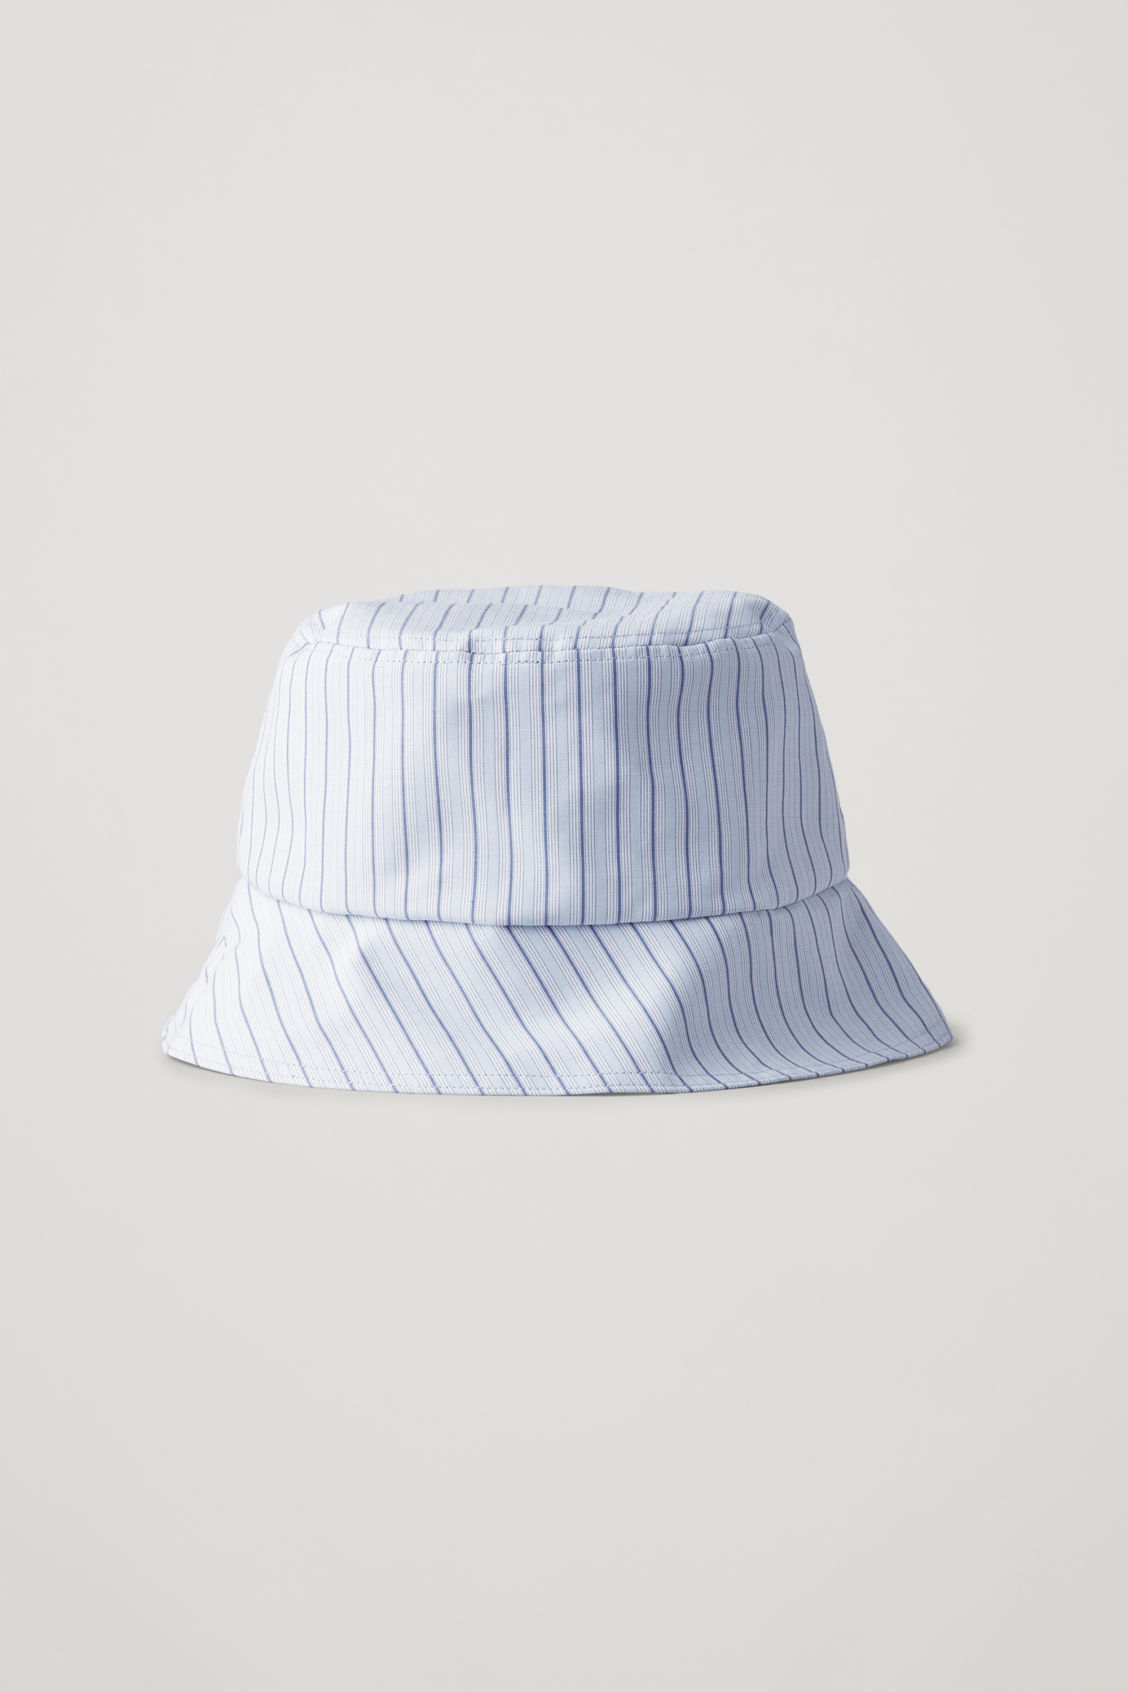 Cos Striped Bucket Hat In Blue  4f06ecc3aba